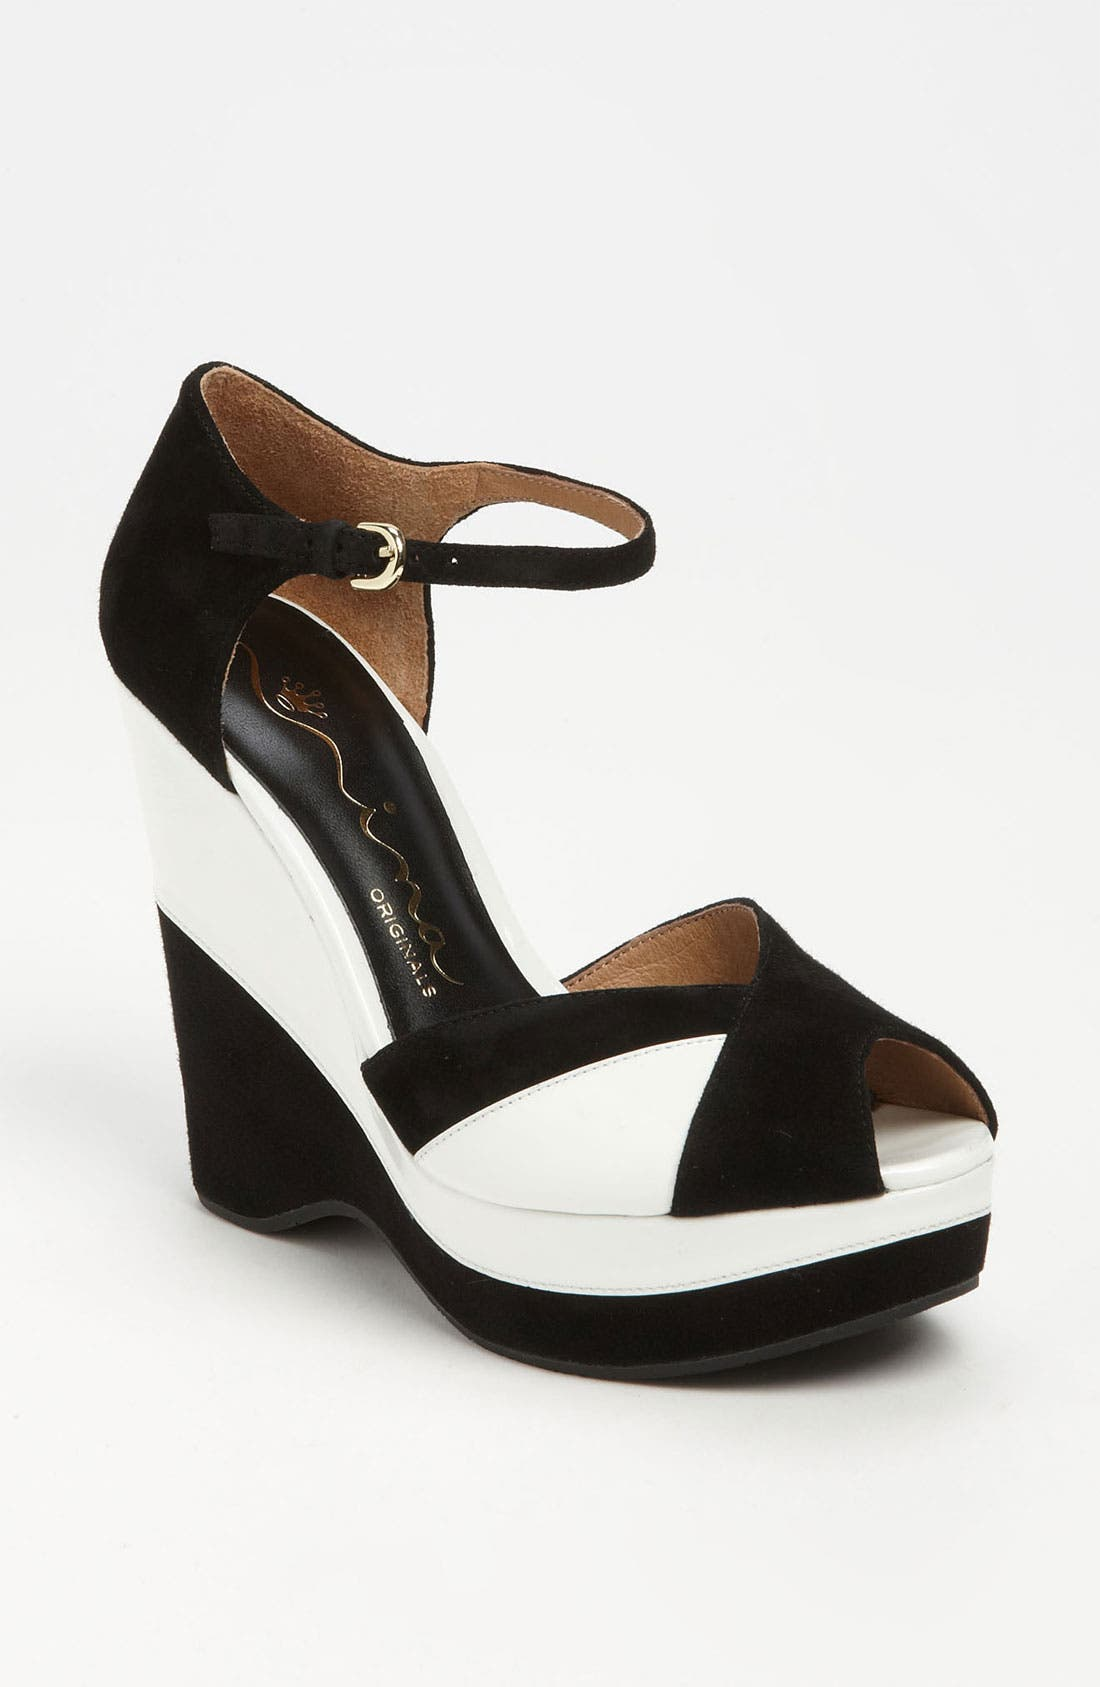 Main Image - Nina Originals 'Shari' Pump